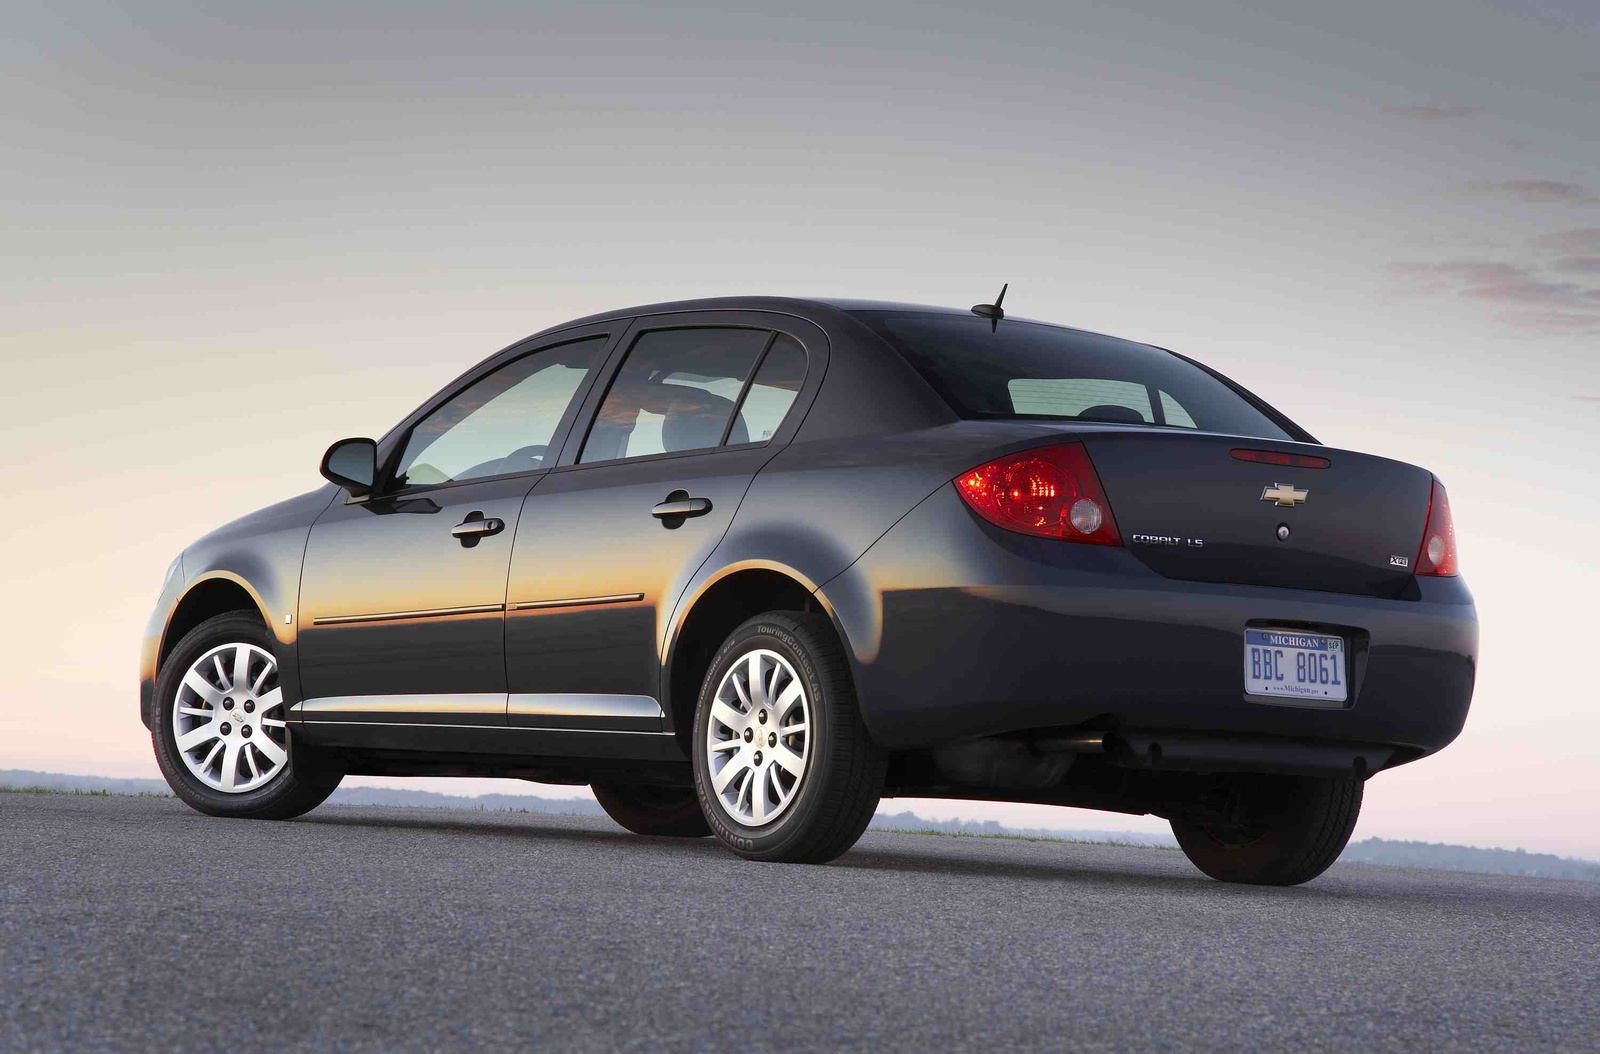 Chevrolet cobalt 2005 photo - 4